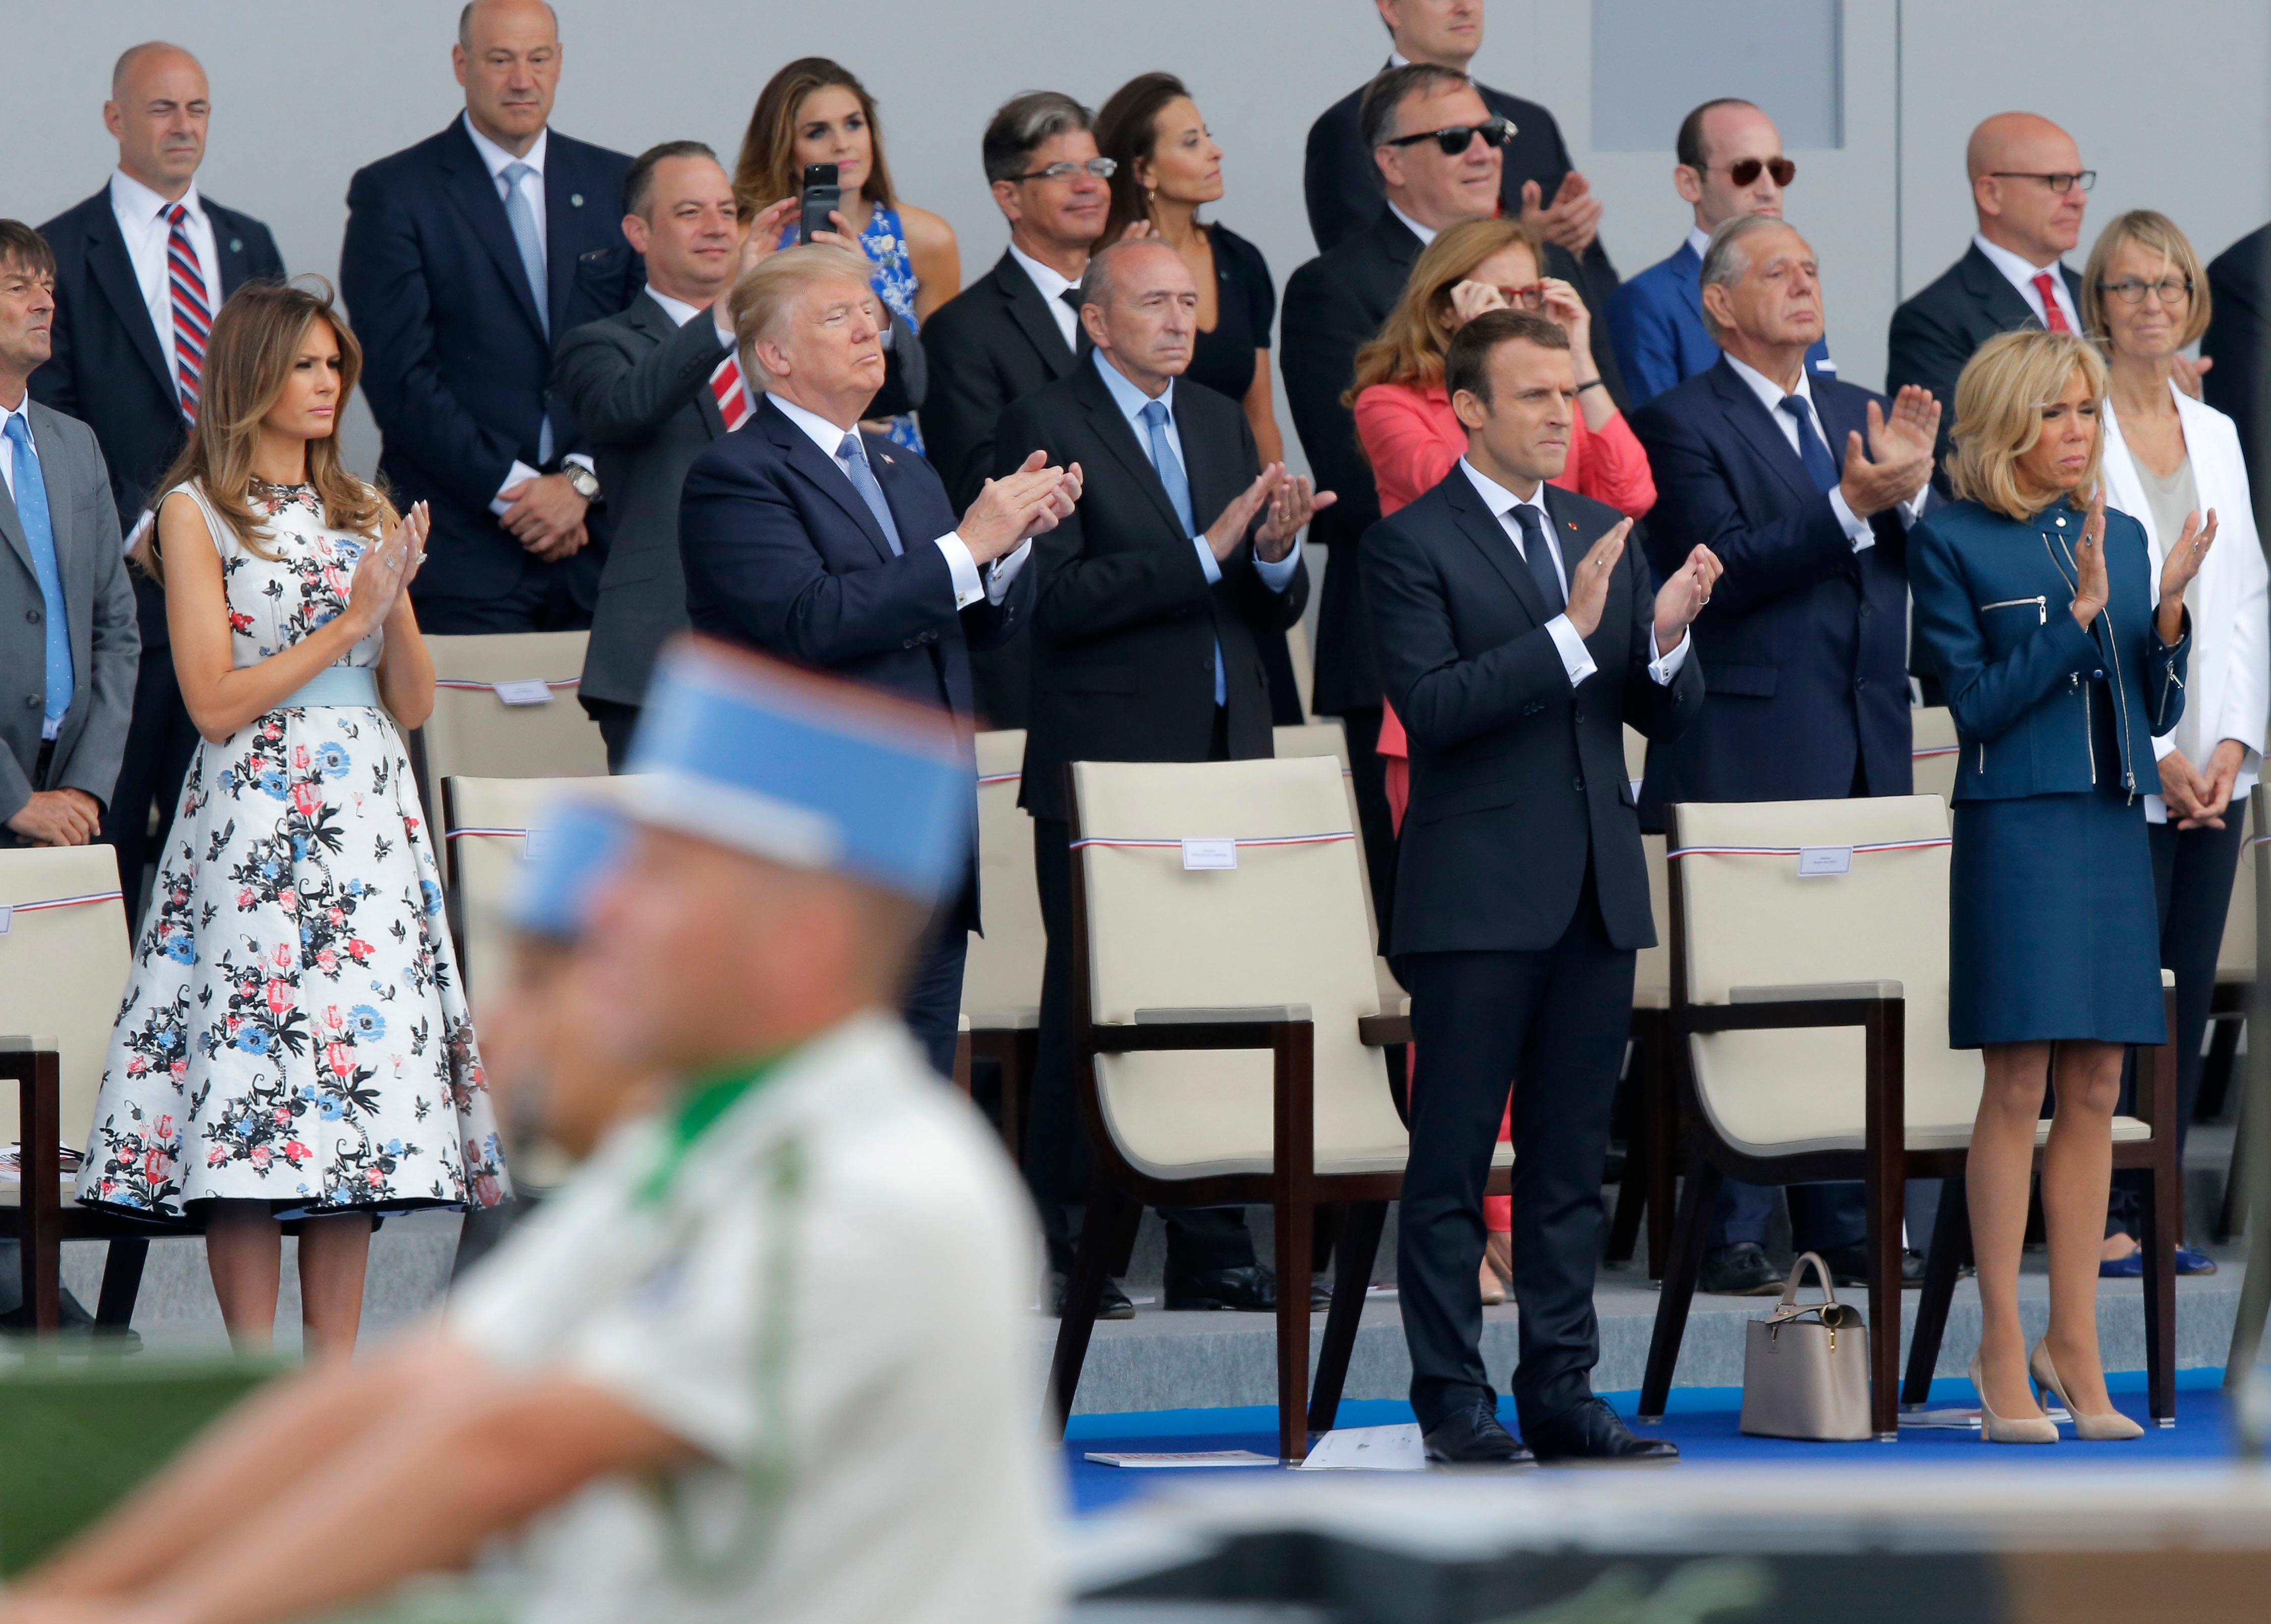 U.S. President Donald Trump, French President Emmanuel Macron, 2nd right, his wife, Brigitte Macron, right, and U.S. First Lady Melania Trump, left, applaud as they watch the traditional Bastille Day military parade on the Champs Elysees, in Paris, Friday, July 14, 2017. (AP Photo/Michel Euler)